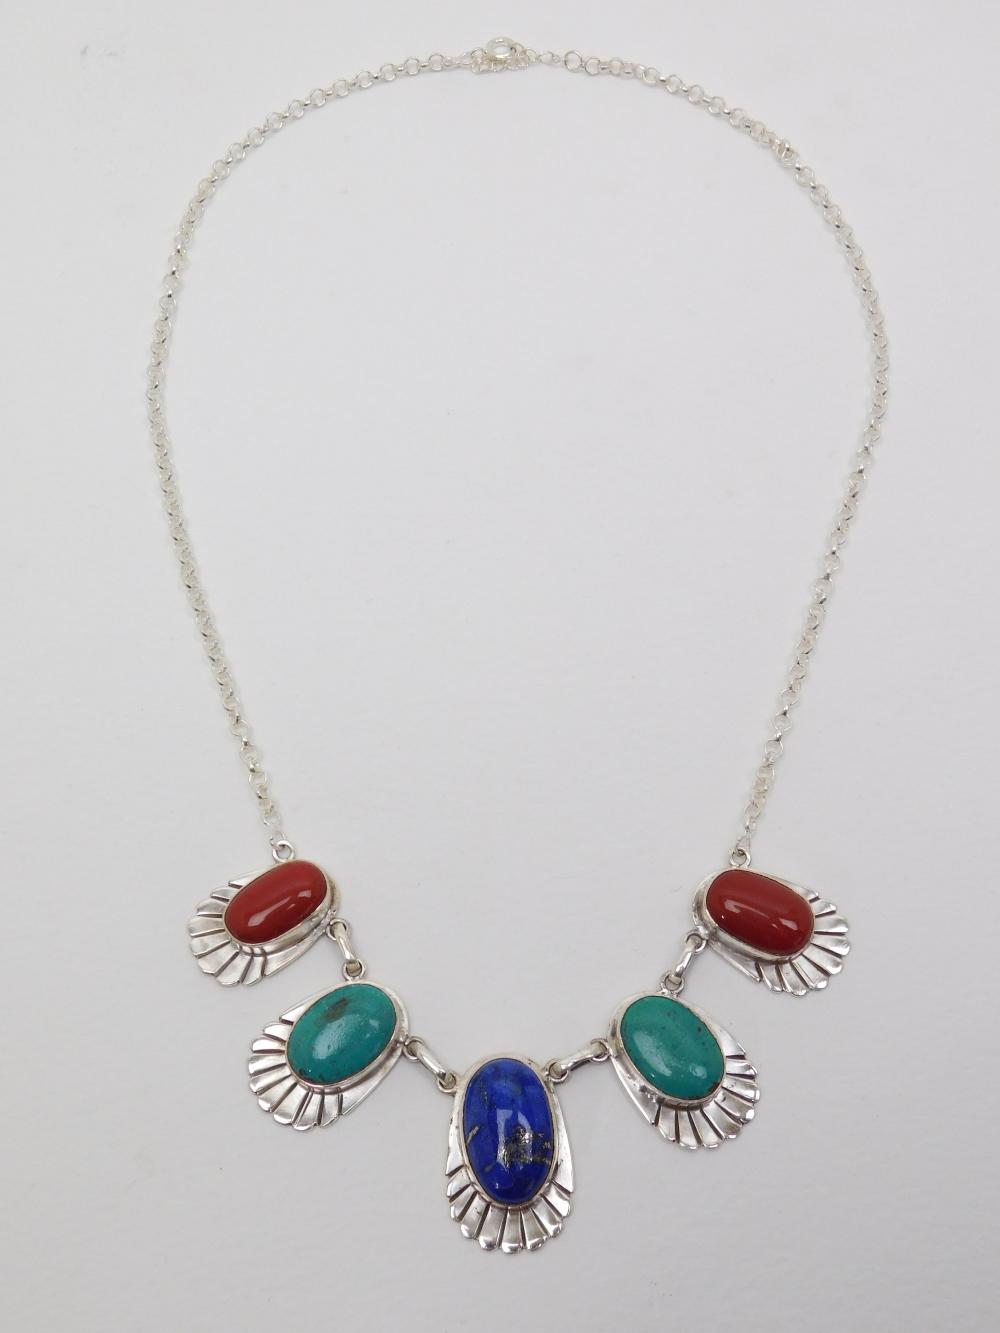 Vintage Mexico Handmade Sterling Silver Turquoise Lapis Coral 5 Cabachon Necklace 42G